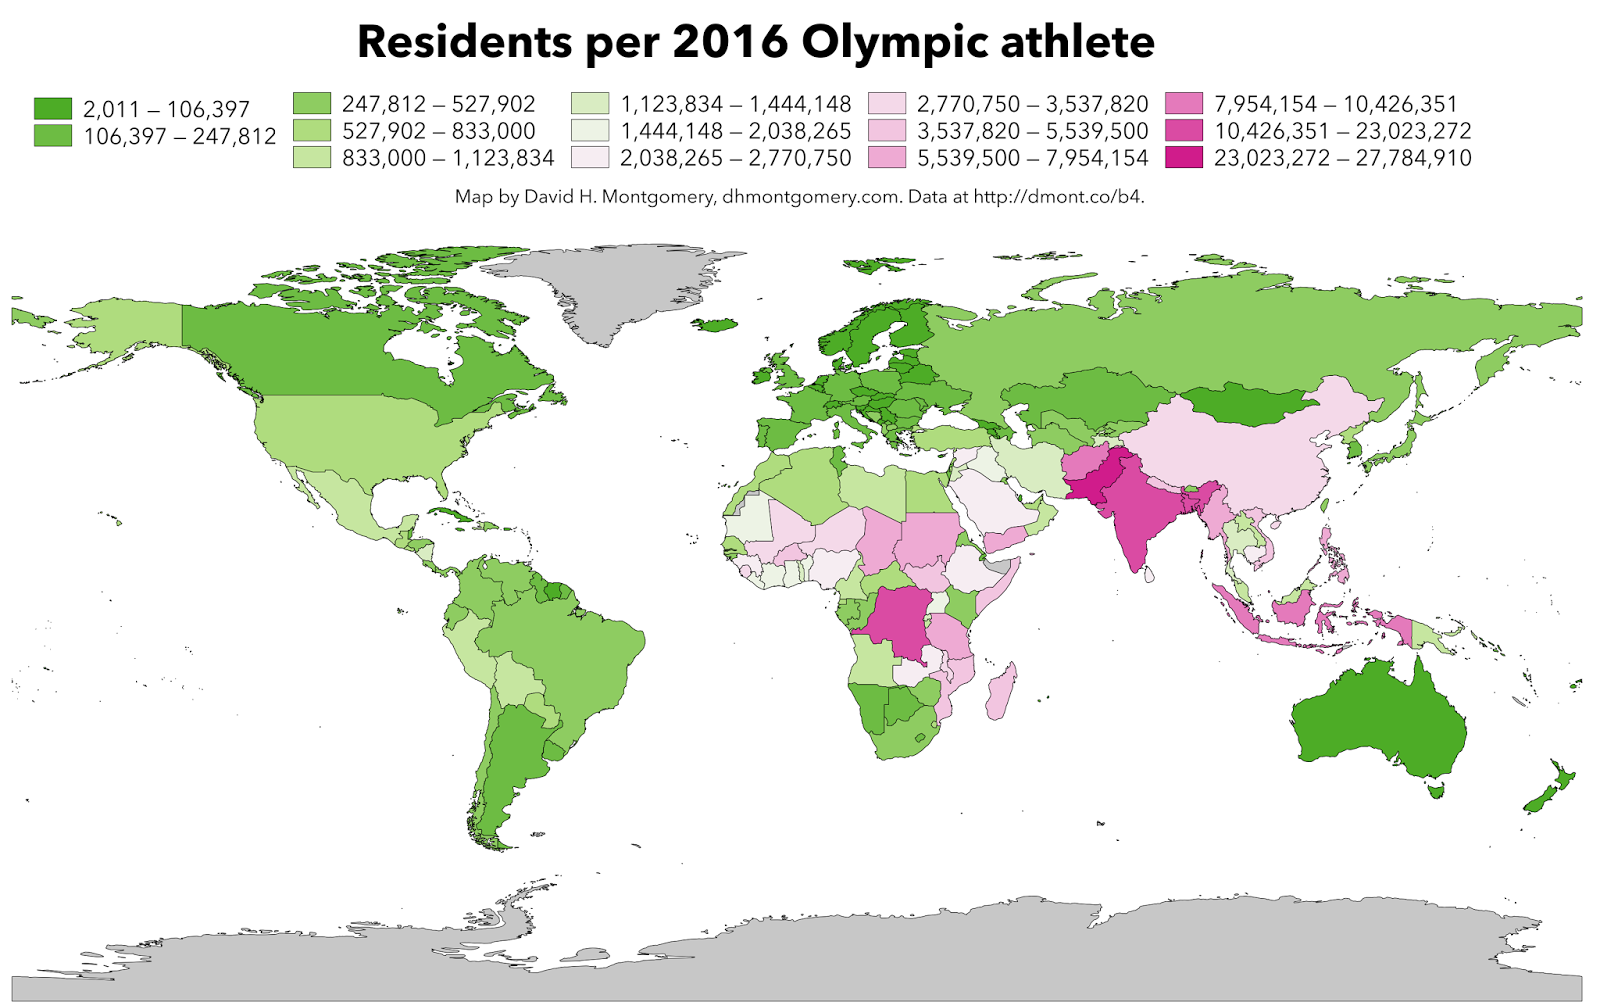 Residents per 2016 Olympic athlete